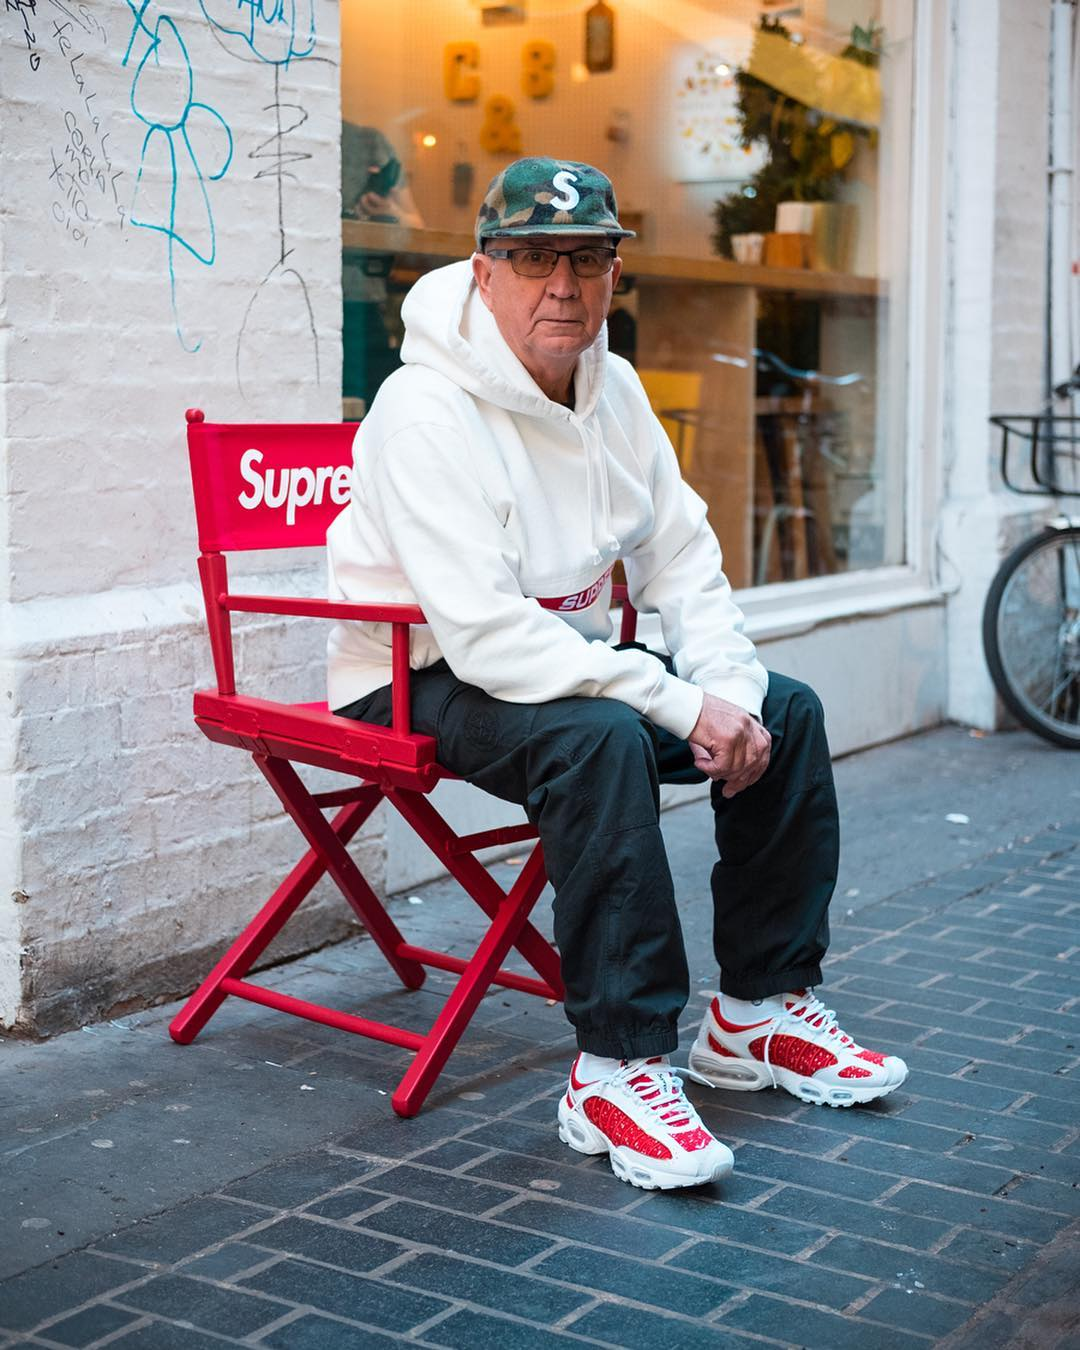 Streetwear Grandpa - national spinal health week - chiropractic, acupuncture, massage, nutrition, naturopathy physiotherapy in Sydney.